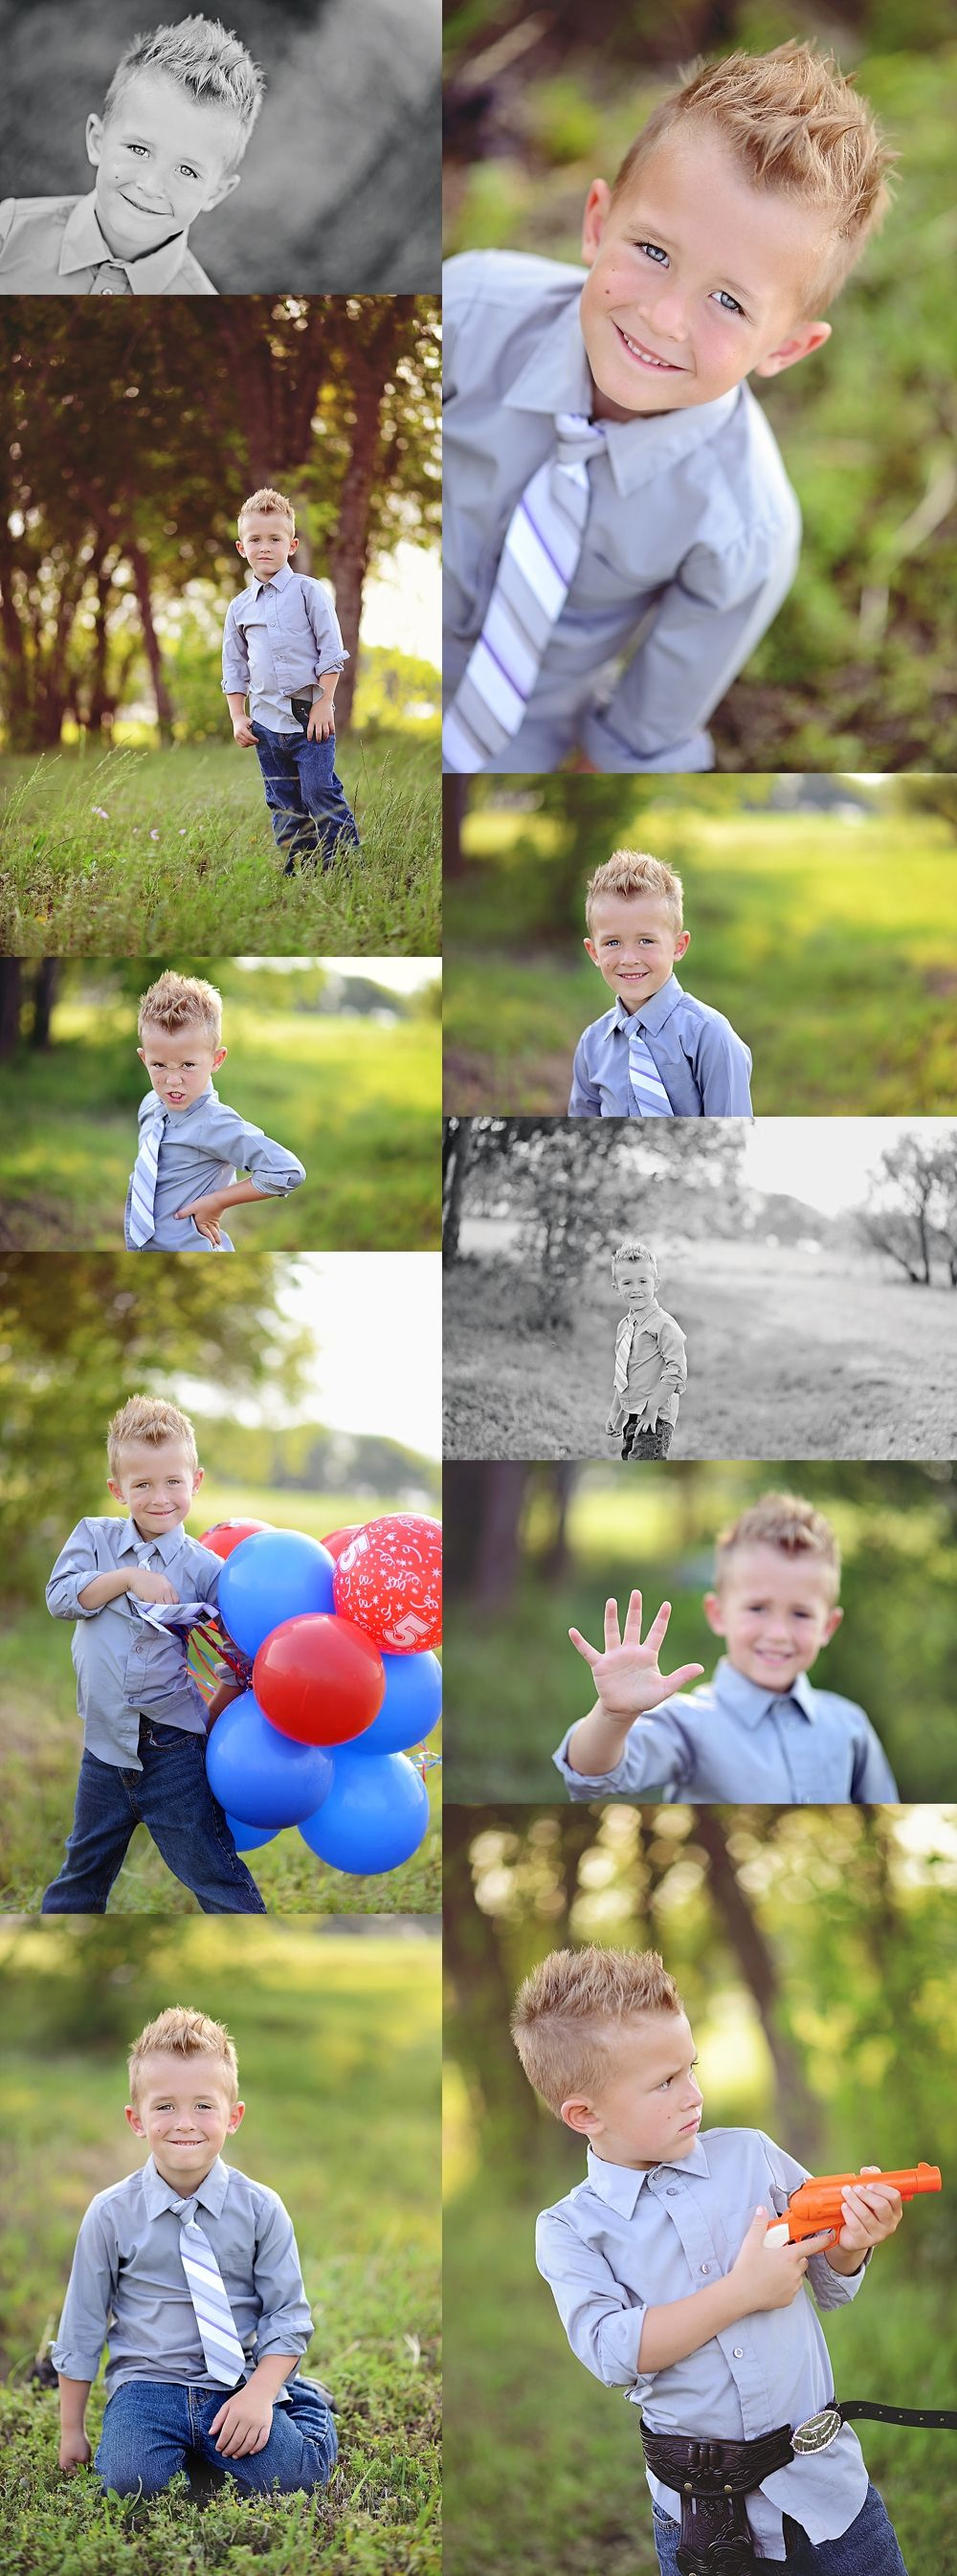 year birthday photography boy c s the day photography 5 year birthday photography boy c s the day photography